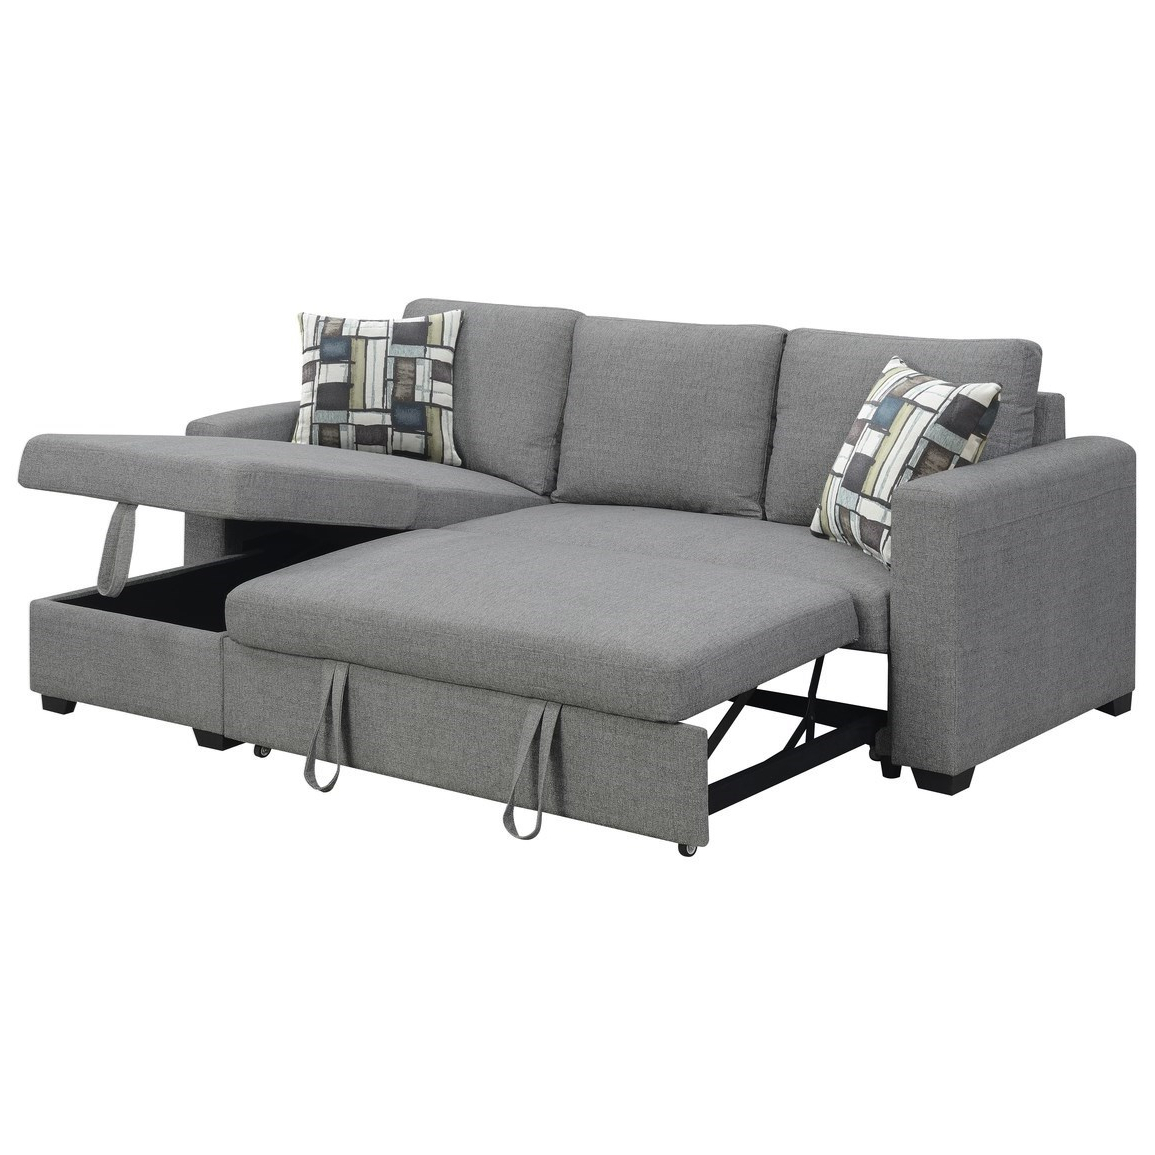 Most Current Copenhagen Reversible Small Space Sectional Sofas With Storage With Langley 2 Piece Sectional With Reversible Chaise (View 18 of 25)